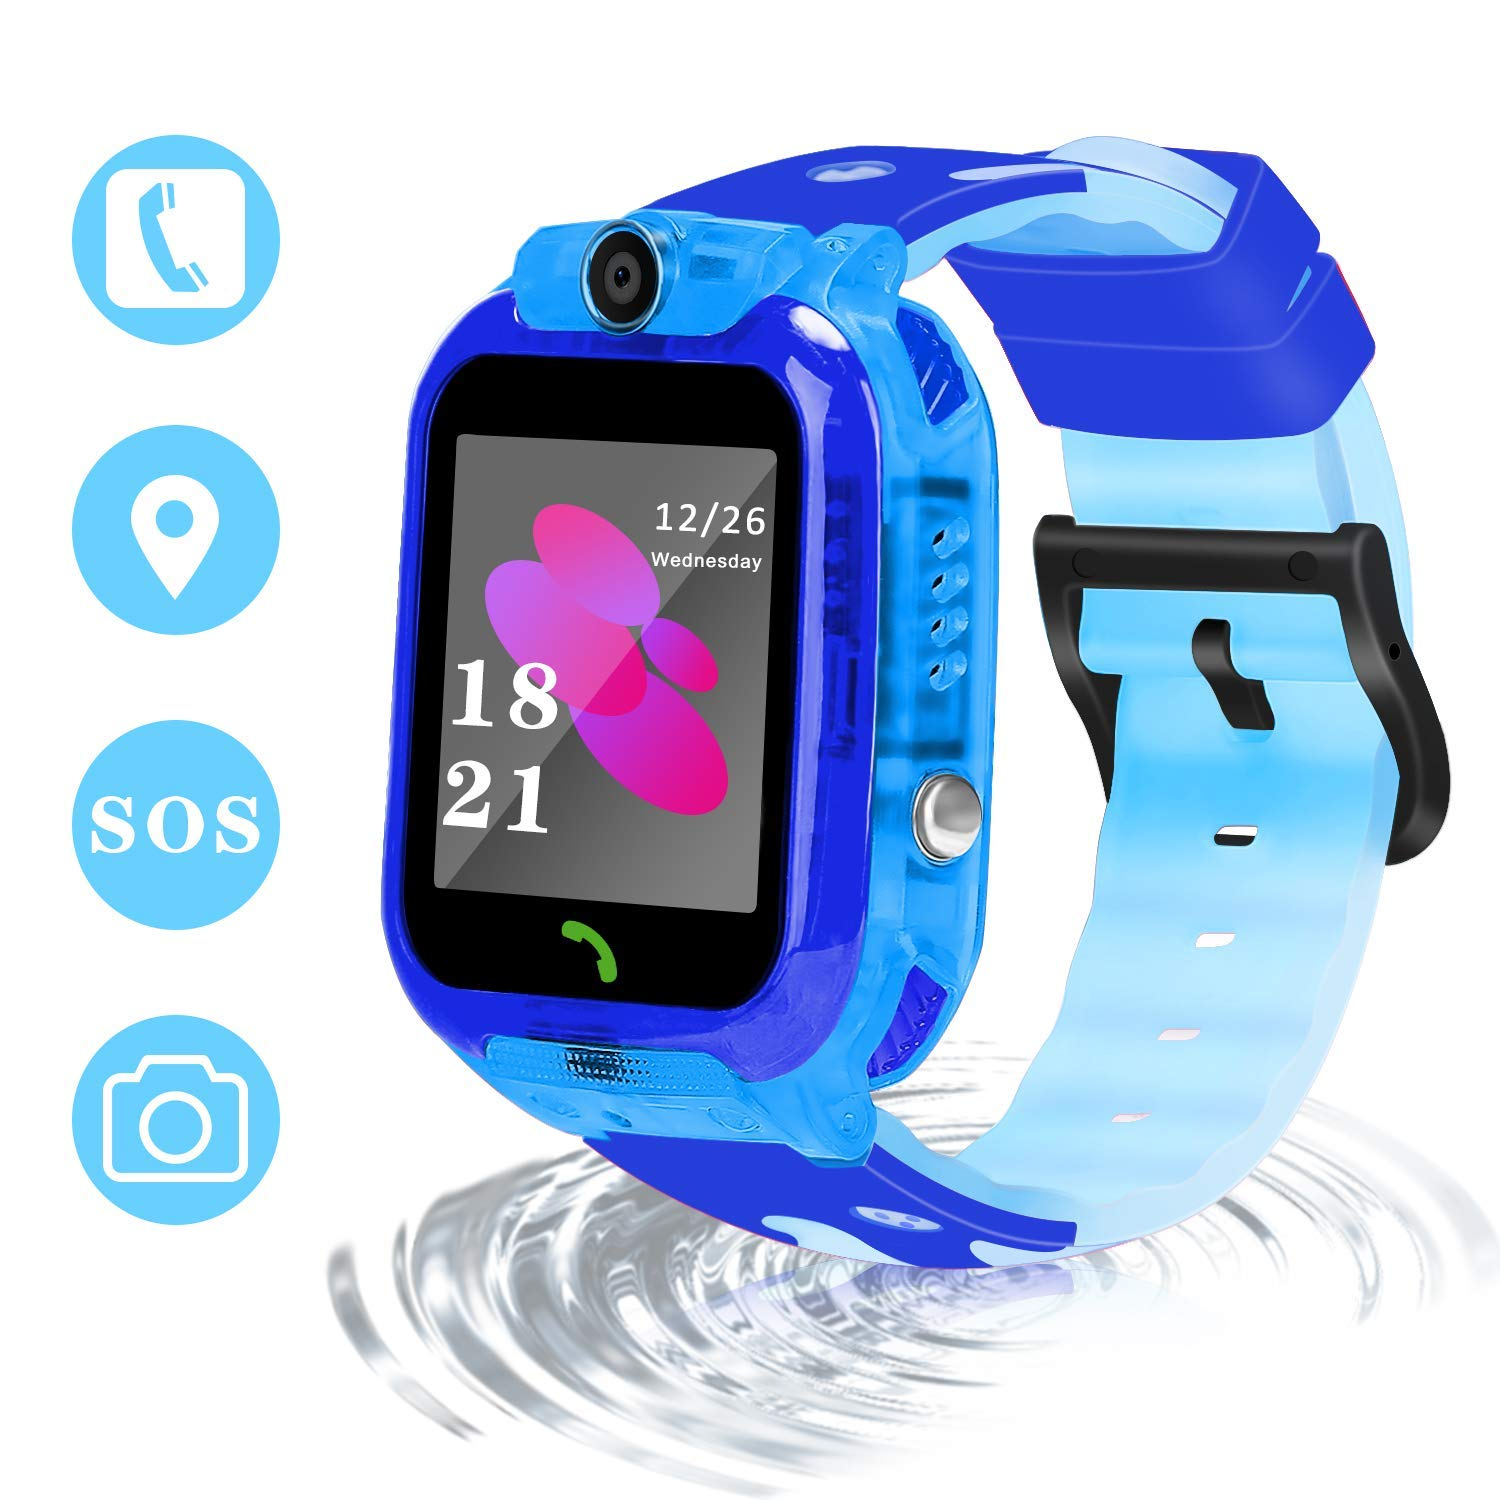 GUANLV Smart Watch for Kids Smart Phone Watch Waterproof GPS Tracker App Remote Control Unlocked SOS with Voice Chat Camera Game Learning Toys 3-12 Ages Boy Girl Best Birthday Gift (Black)